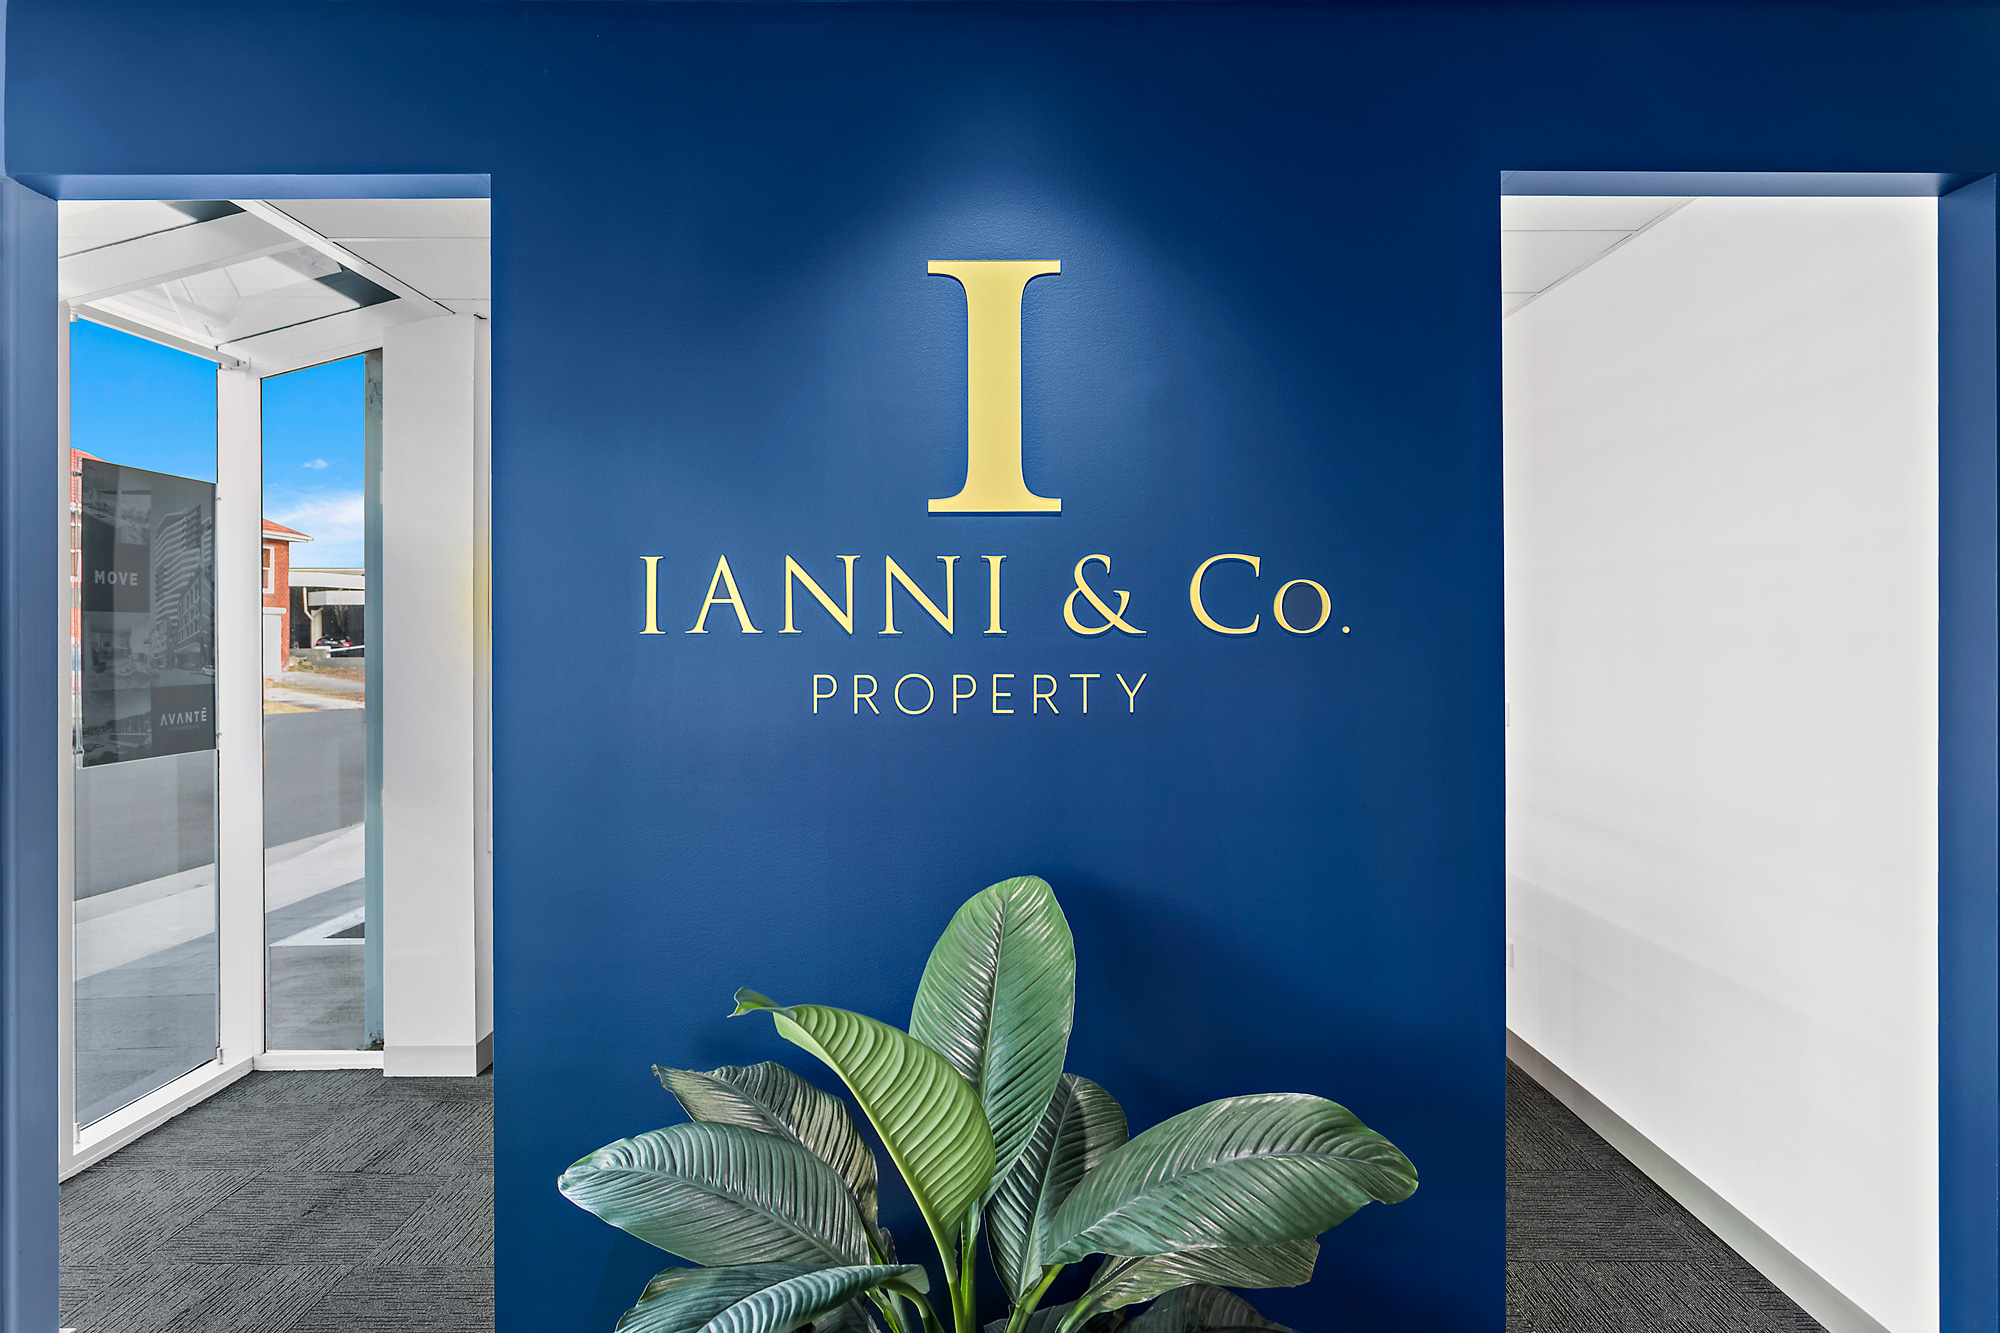 visual-energy-signs-wollongong-ianni-and-co-property-illawarra-real-estate-sign-branding-graphic-design-signage-signs-4.jpg